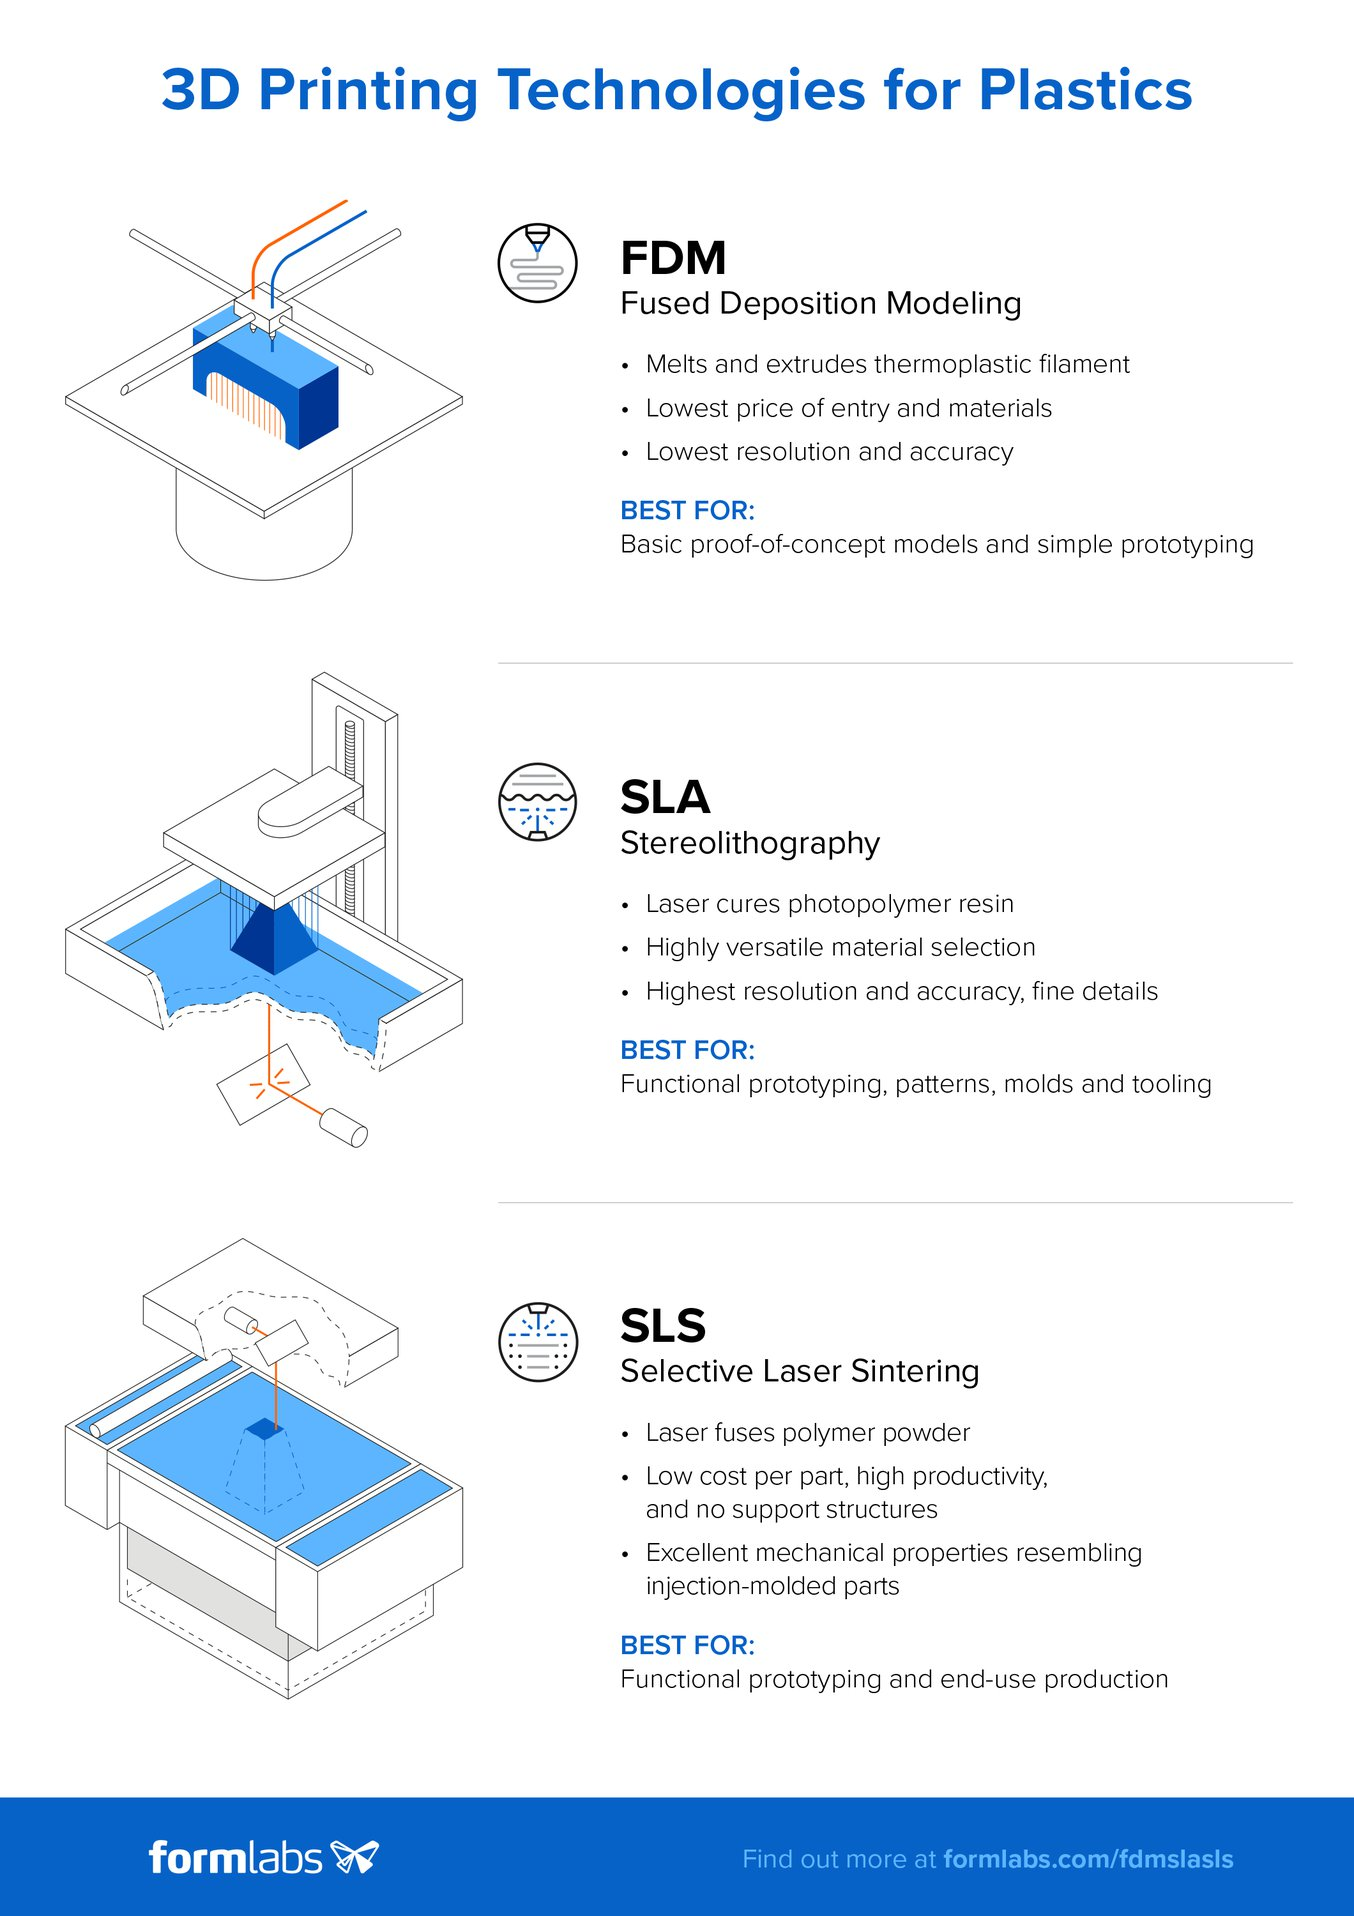 Infographic: Compare selective laser sintering 3D printing to two other common technologies for producing plastic parts: fused deposition modeling (FDM) and stereolithography (SLA).